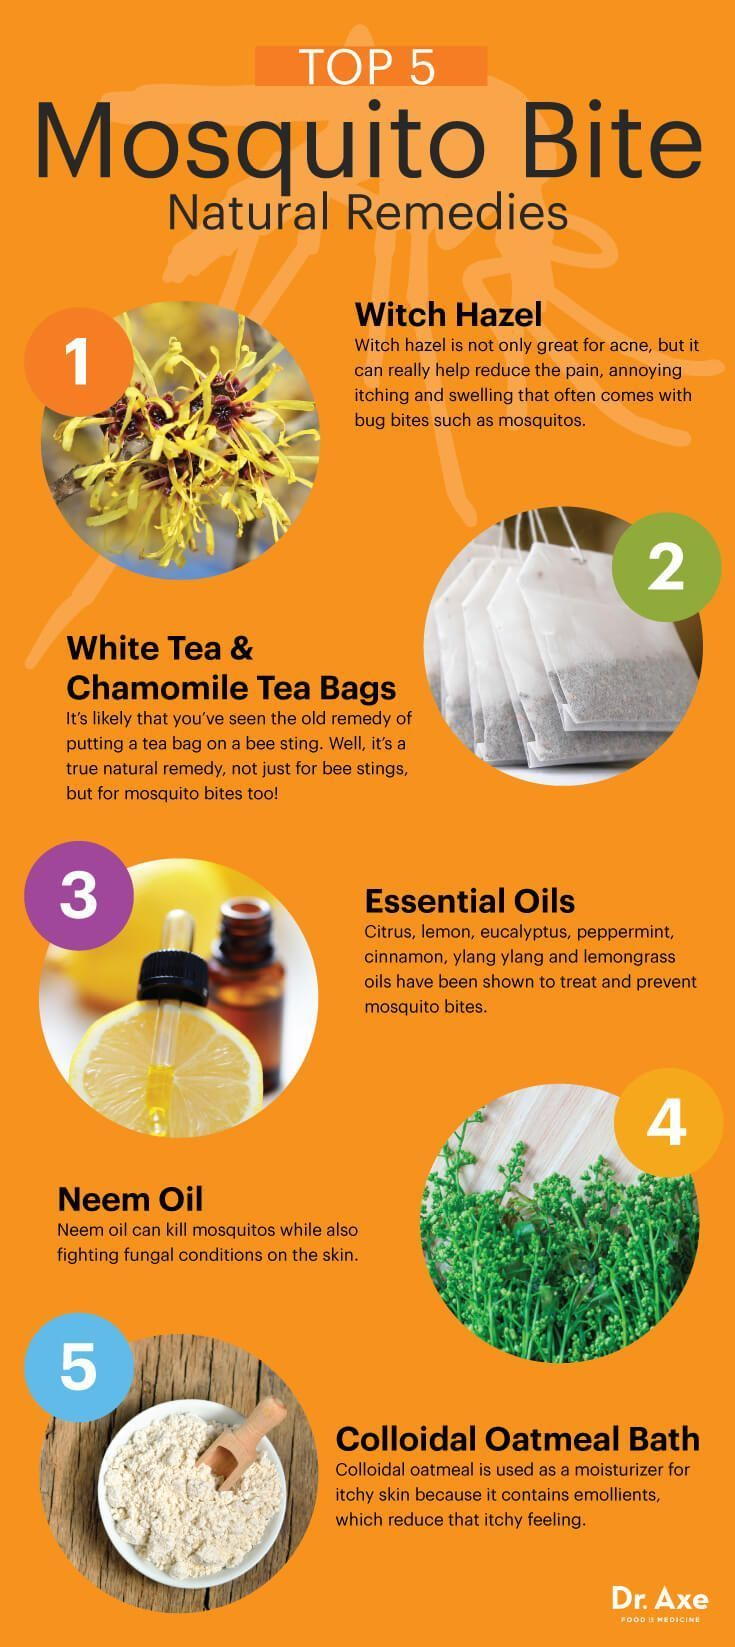 Top five home remedies for mosquito bites - Dr. Axe http://www.draxe.com #health #holistic #natural